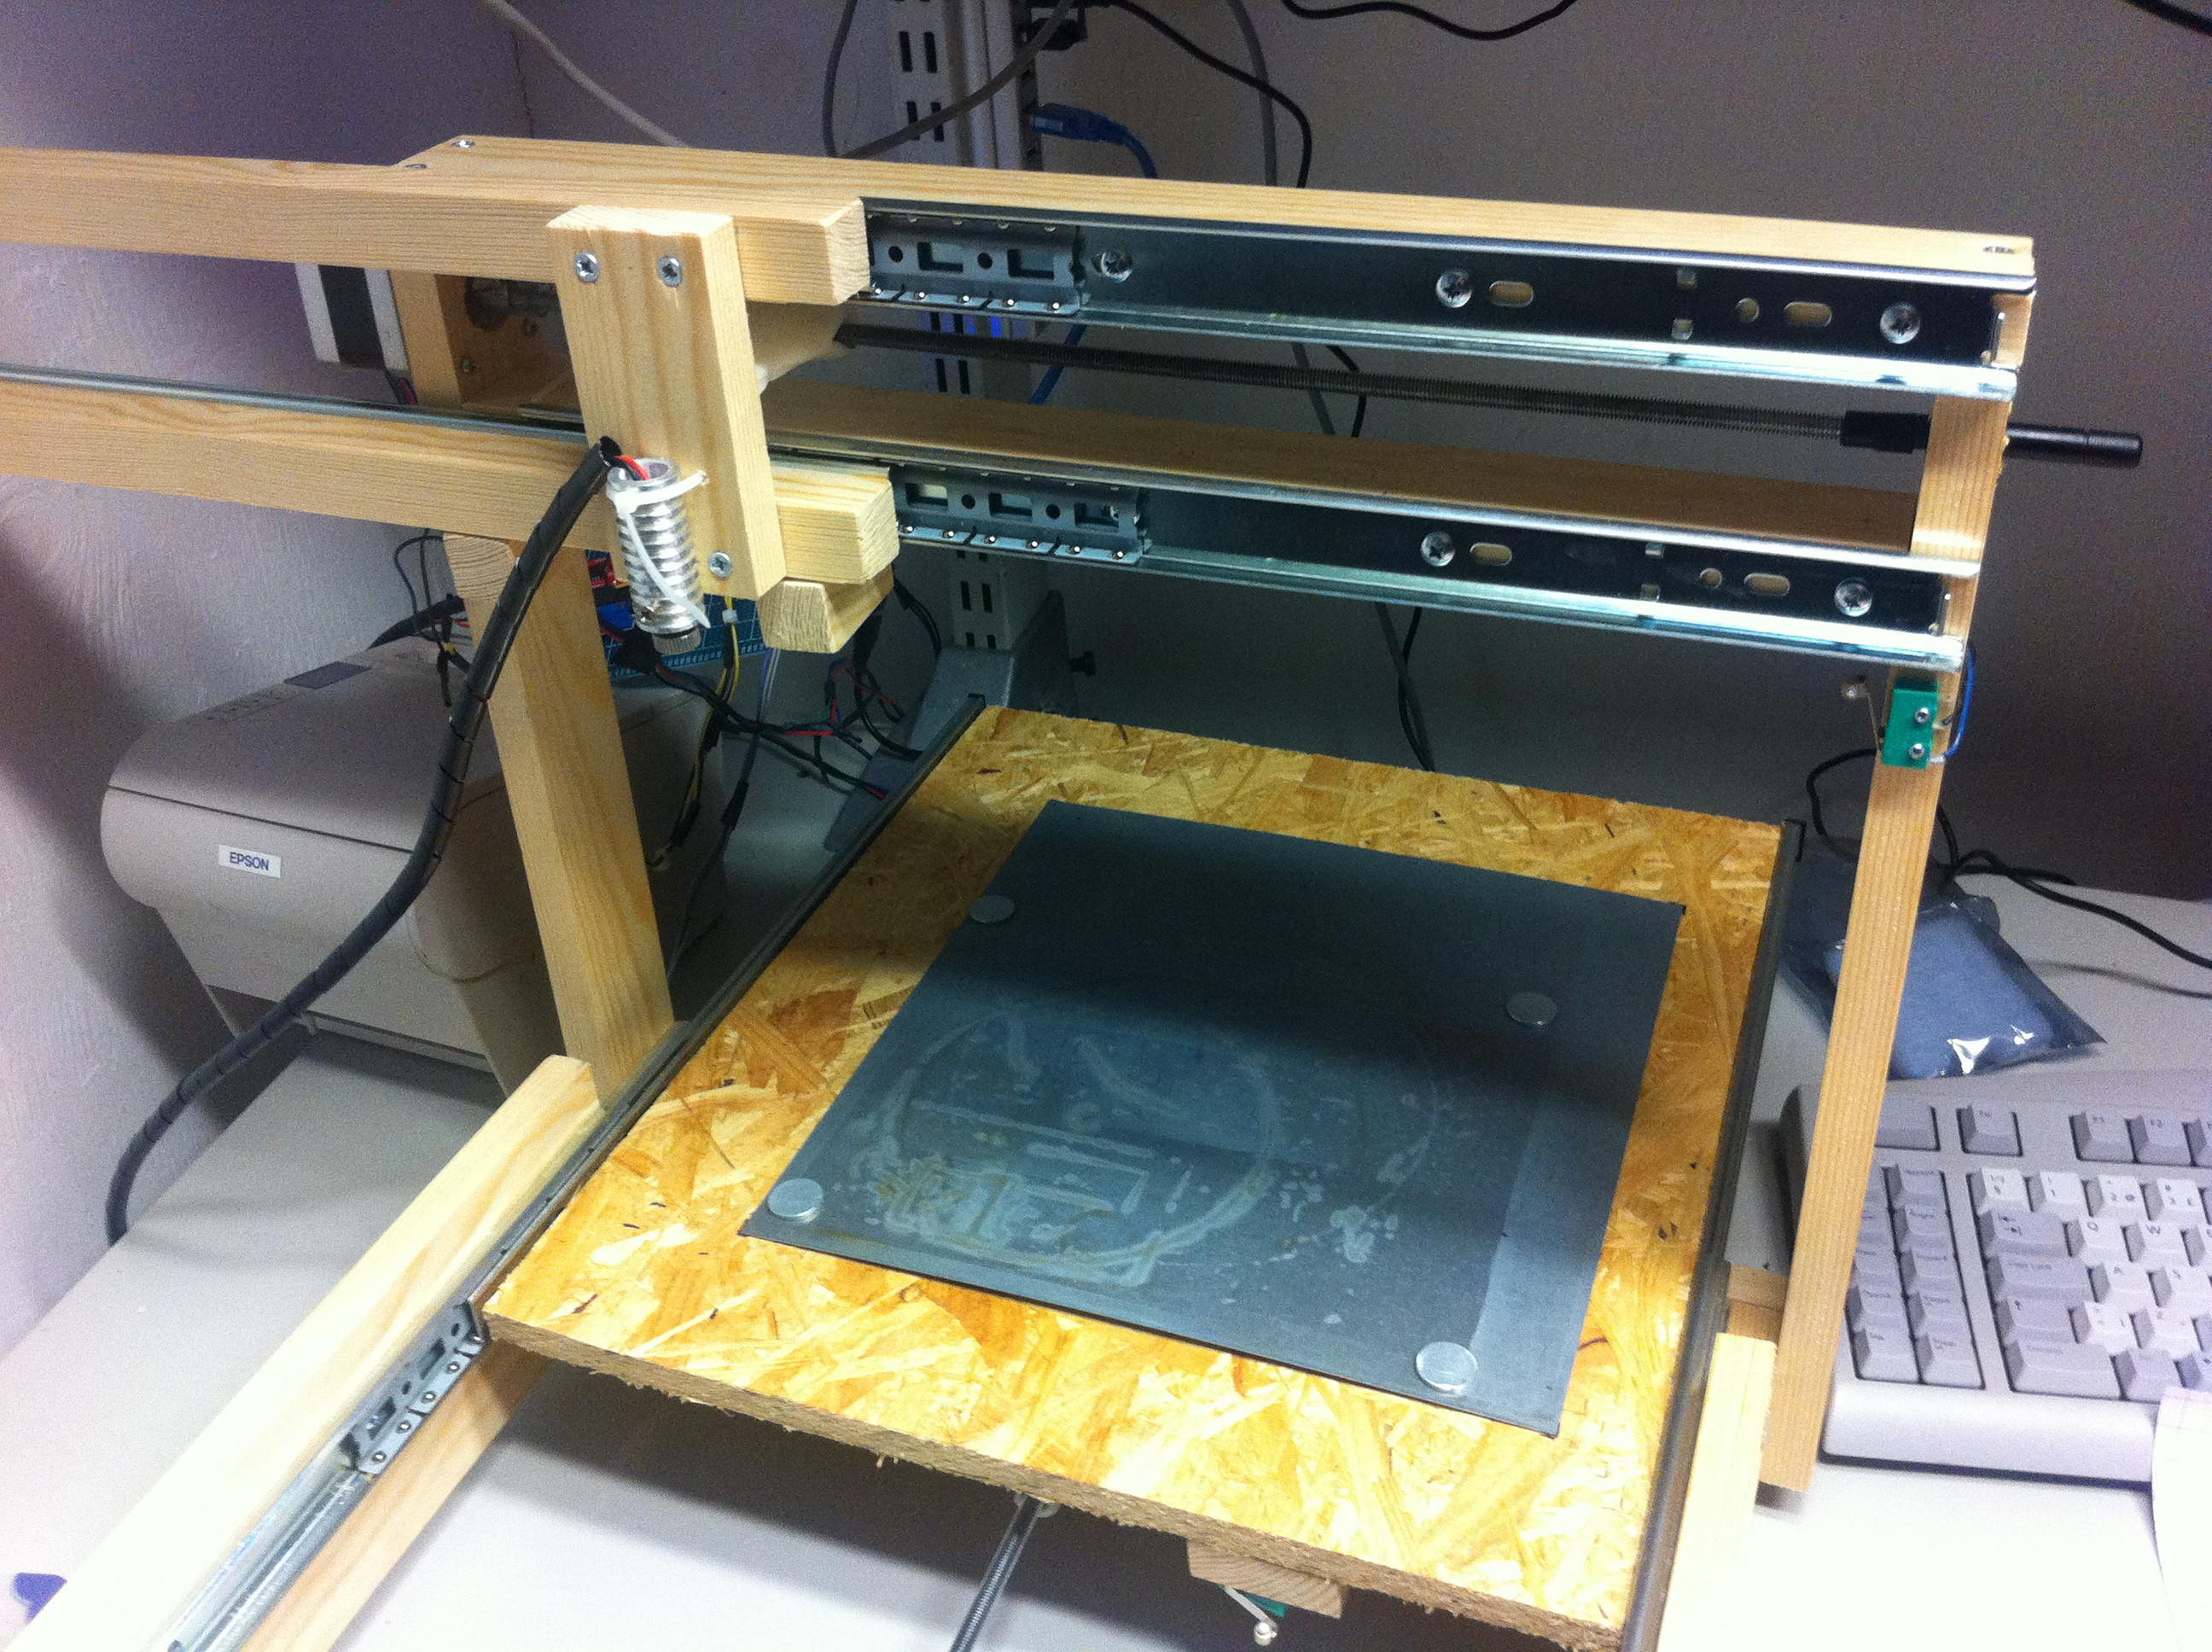 Best ideas about DIY Cnc Laser Cutter . Save or Pin What can you cut with a 300mW DIY laser cutter Now.